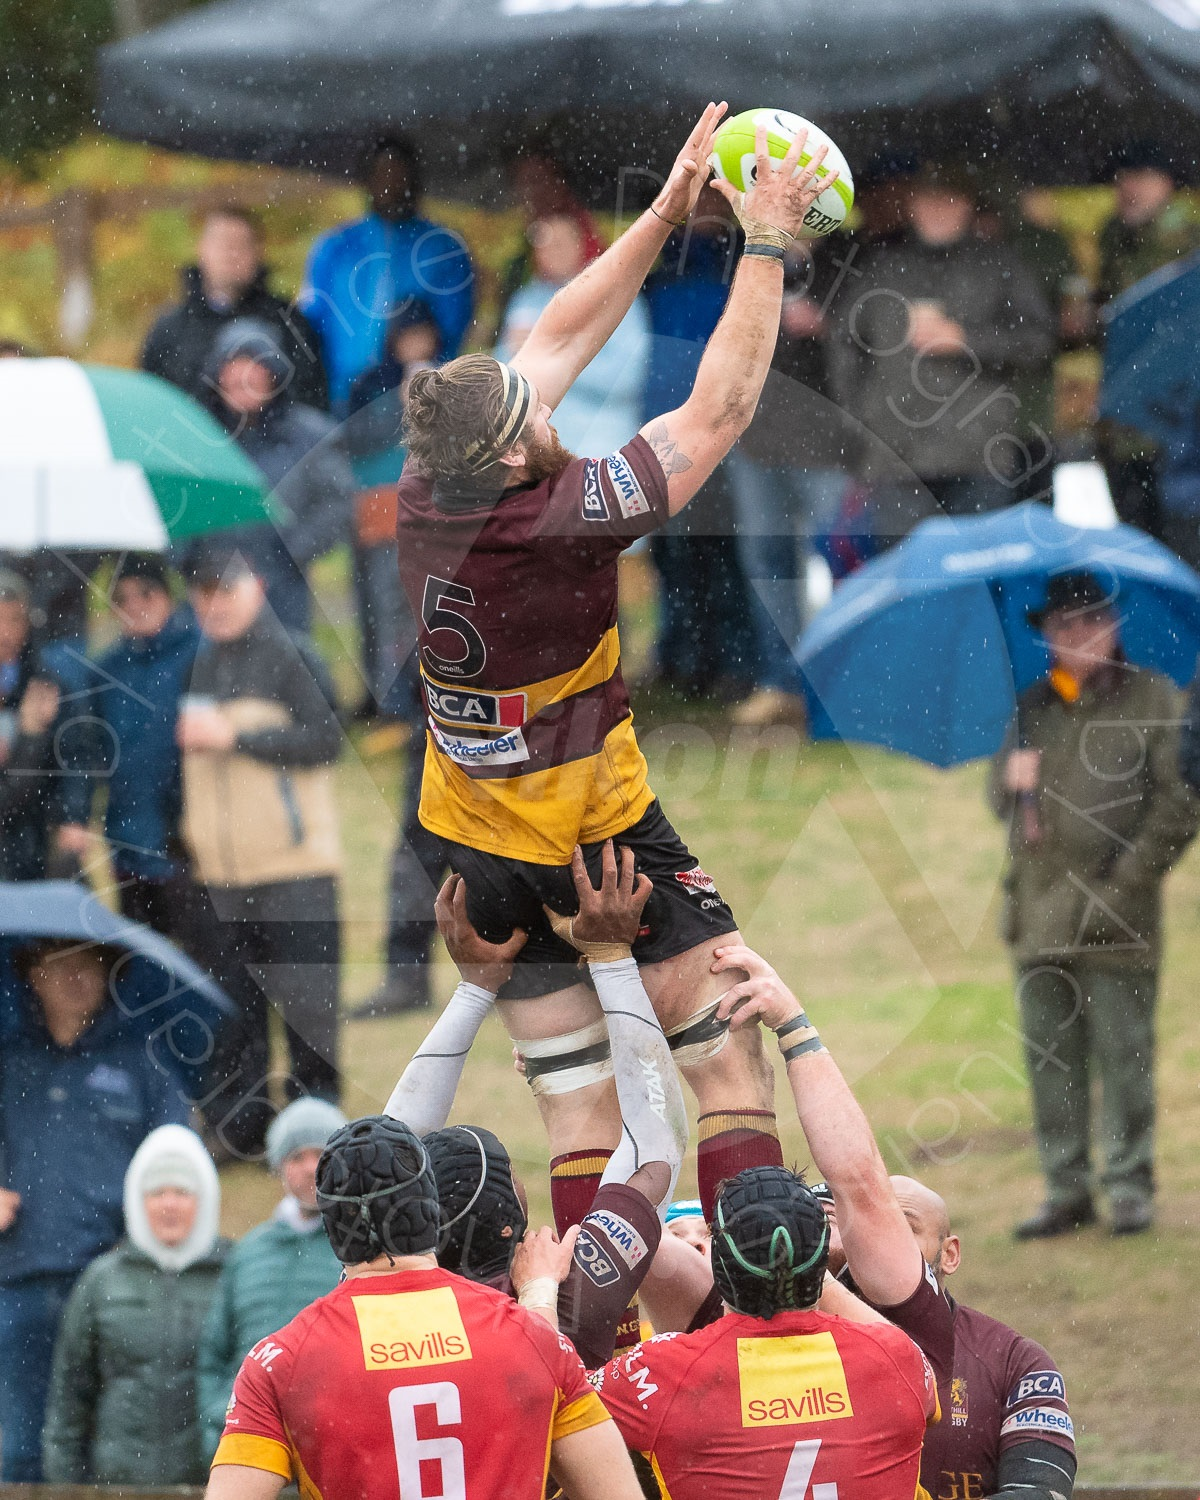 Josh Walker secures a lineout